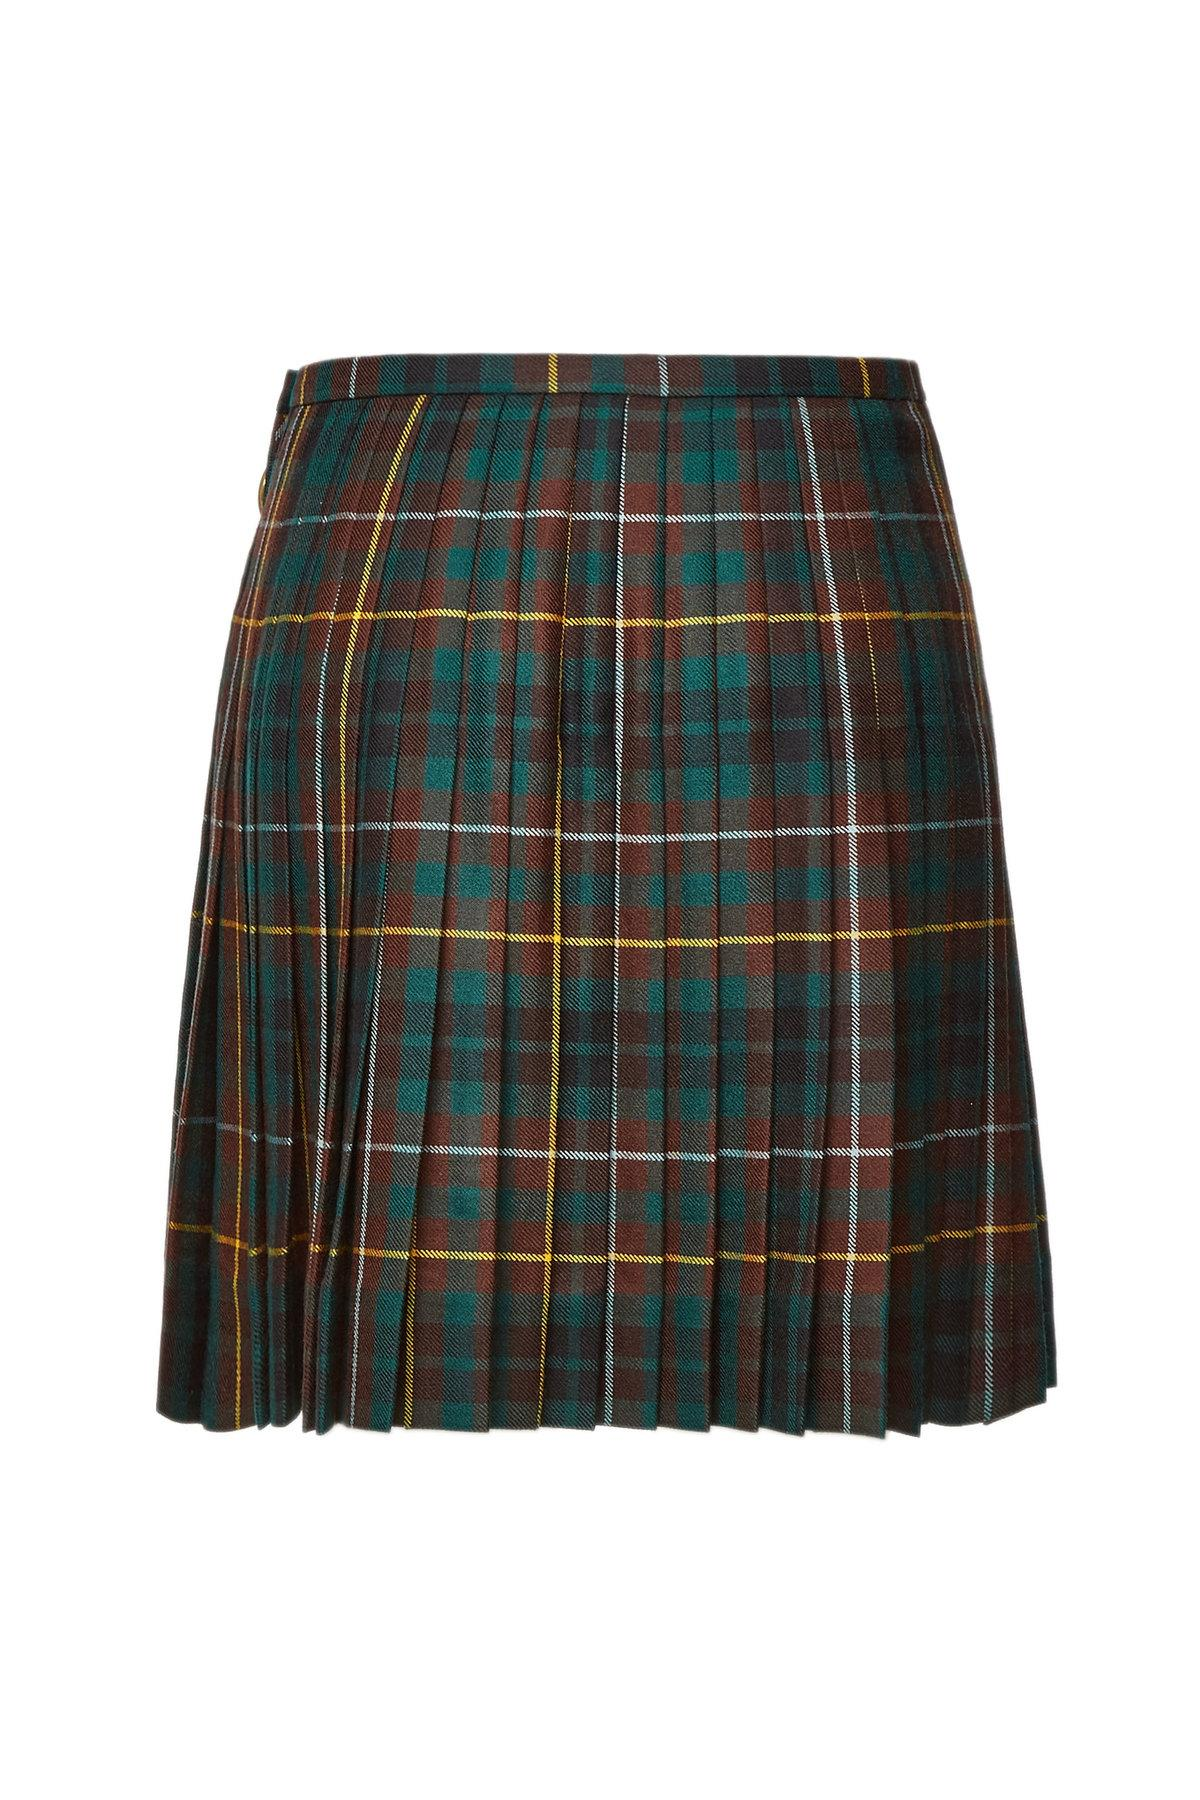 2d809454b Burberry - Multicolor Adige Checked Wool Skirt - Lyst. View fullscreen